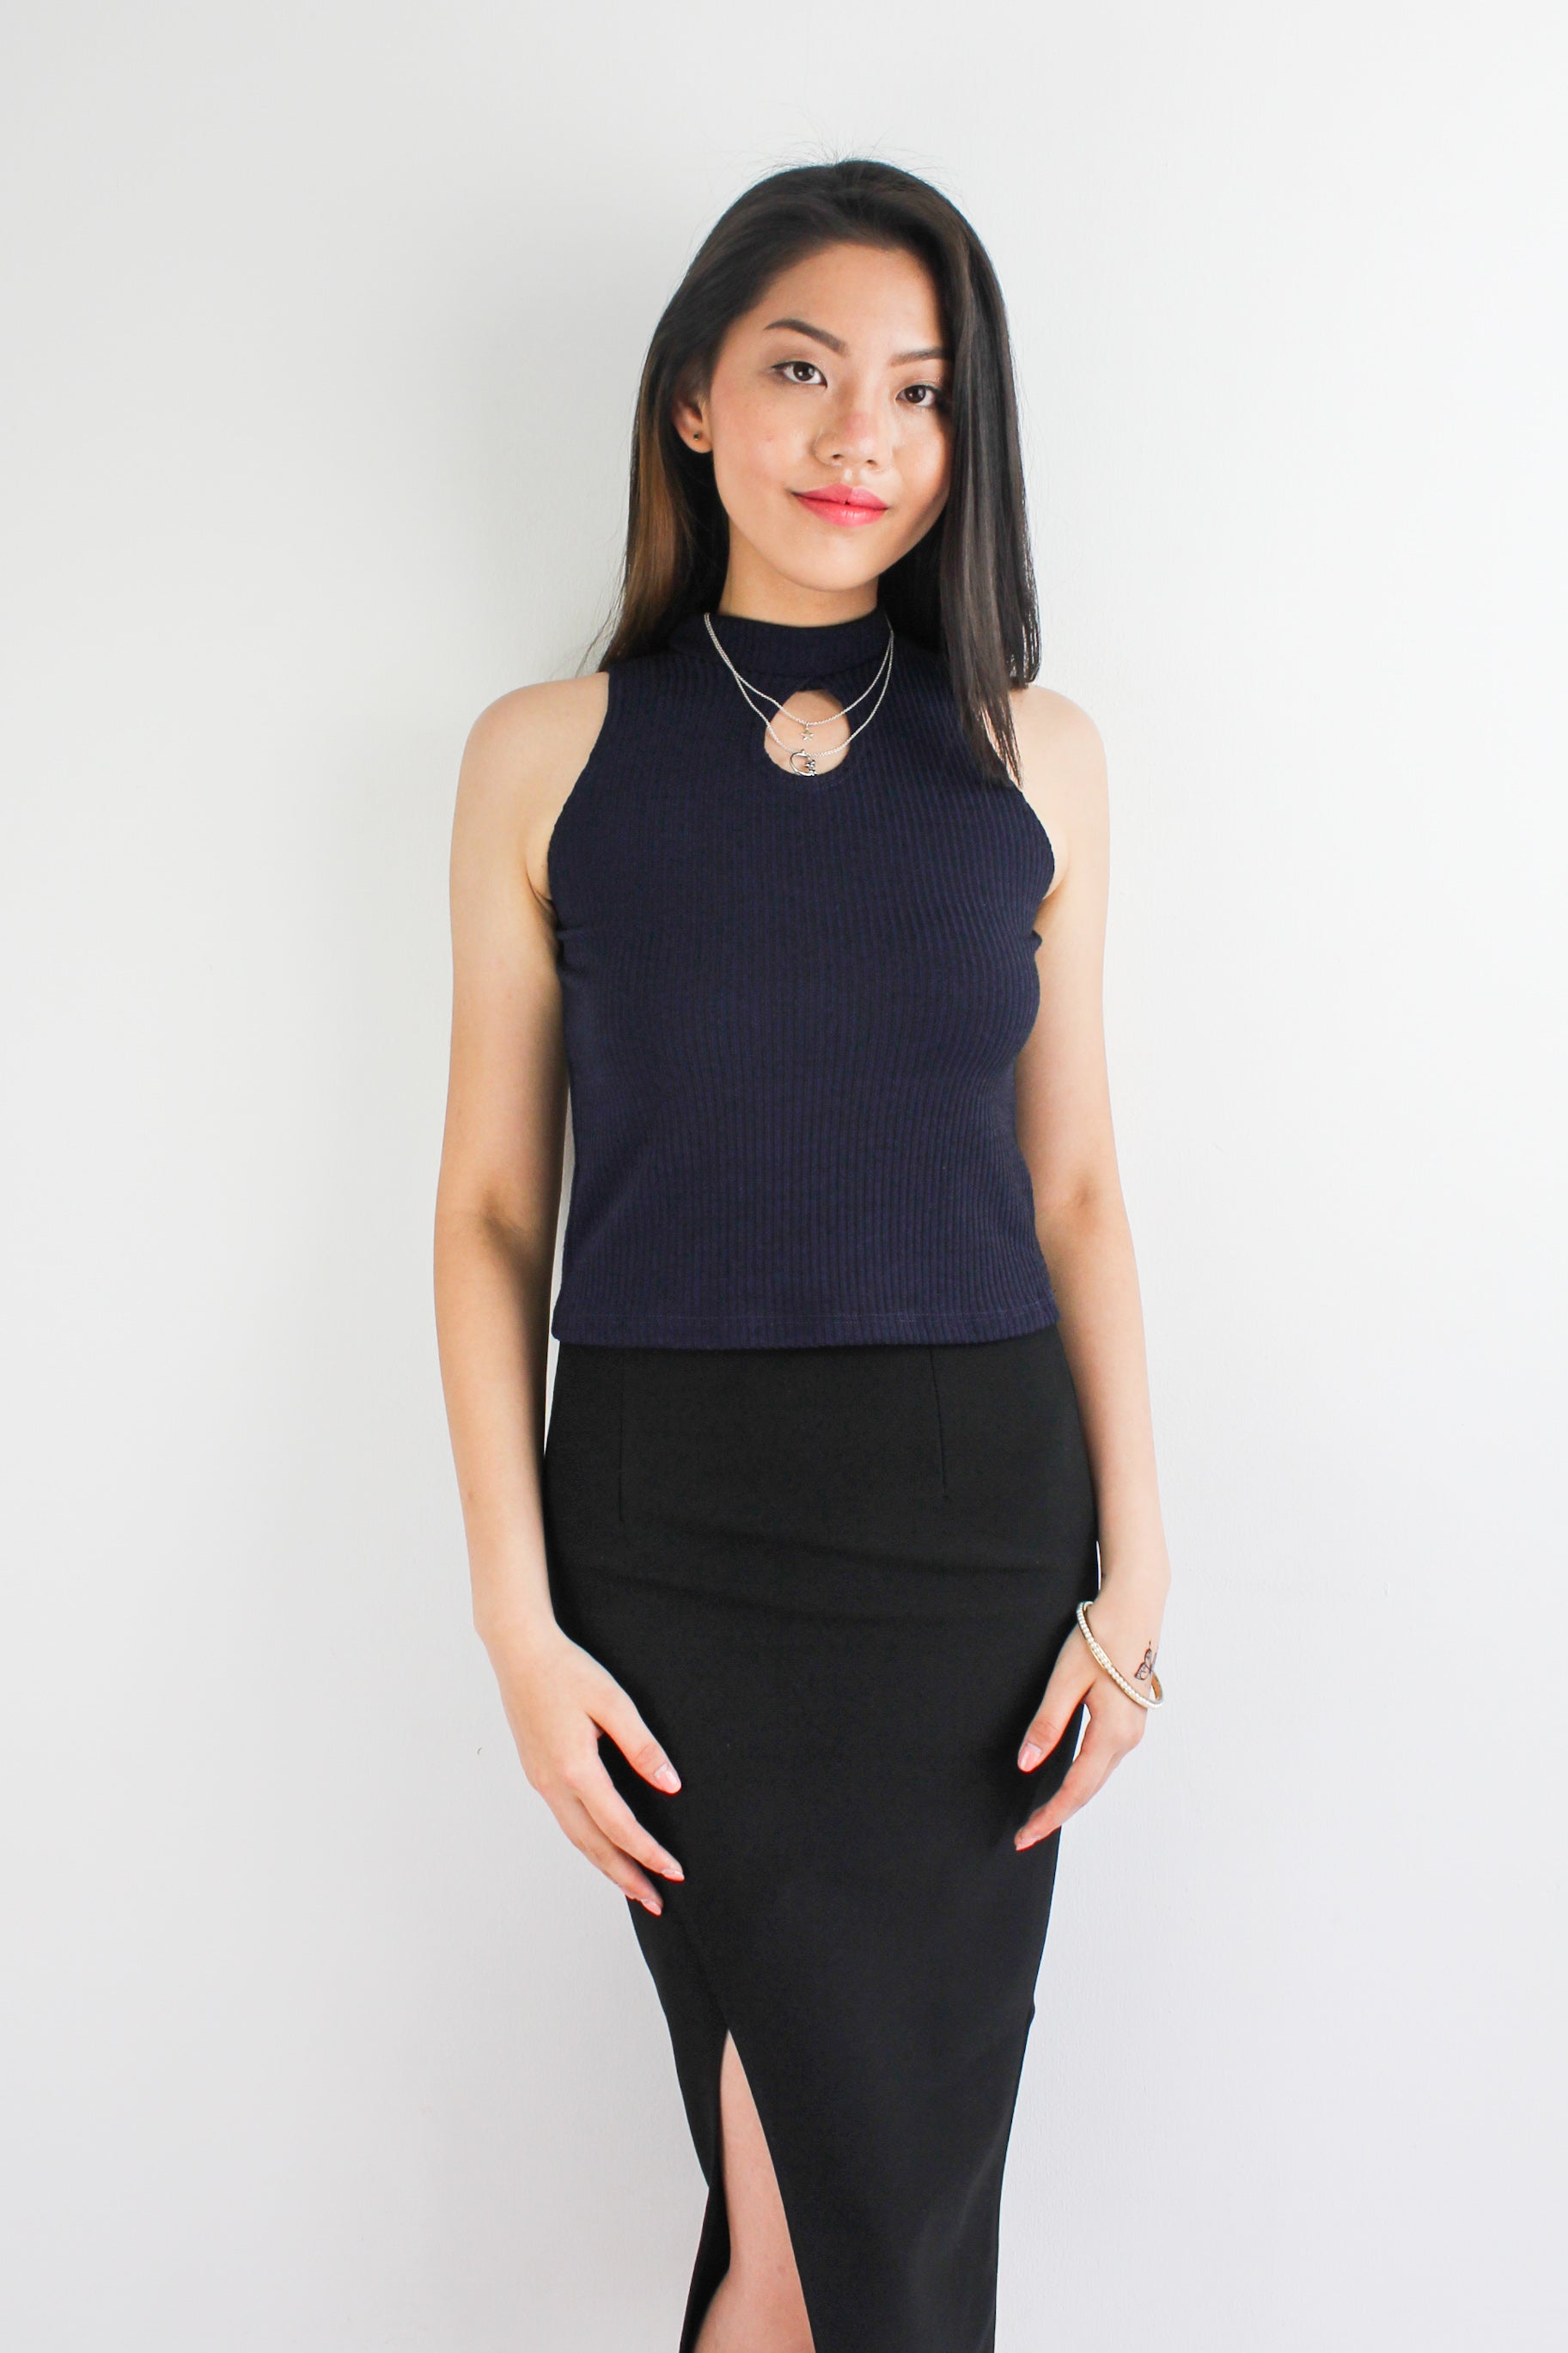 Peep Hole Top in Navy Blue